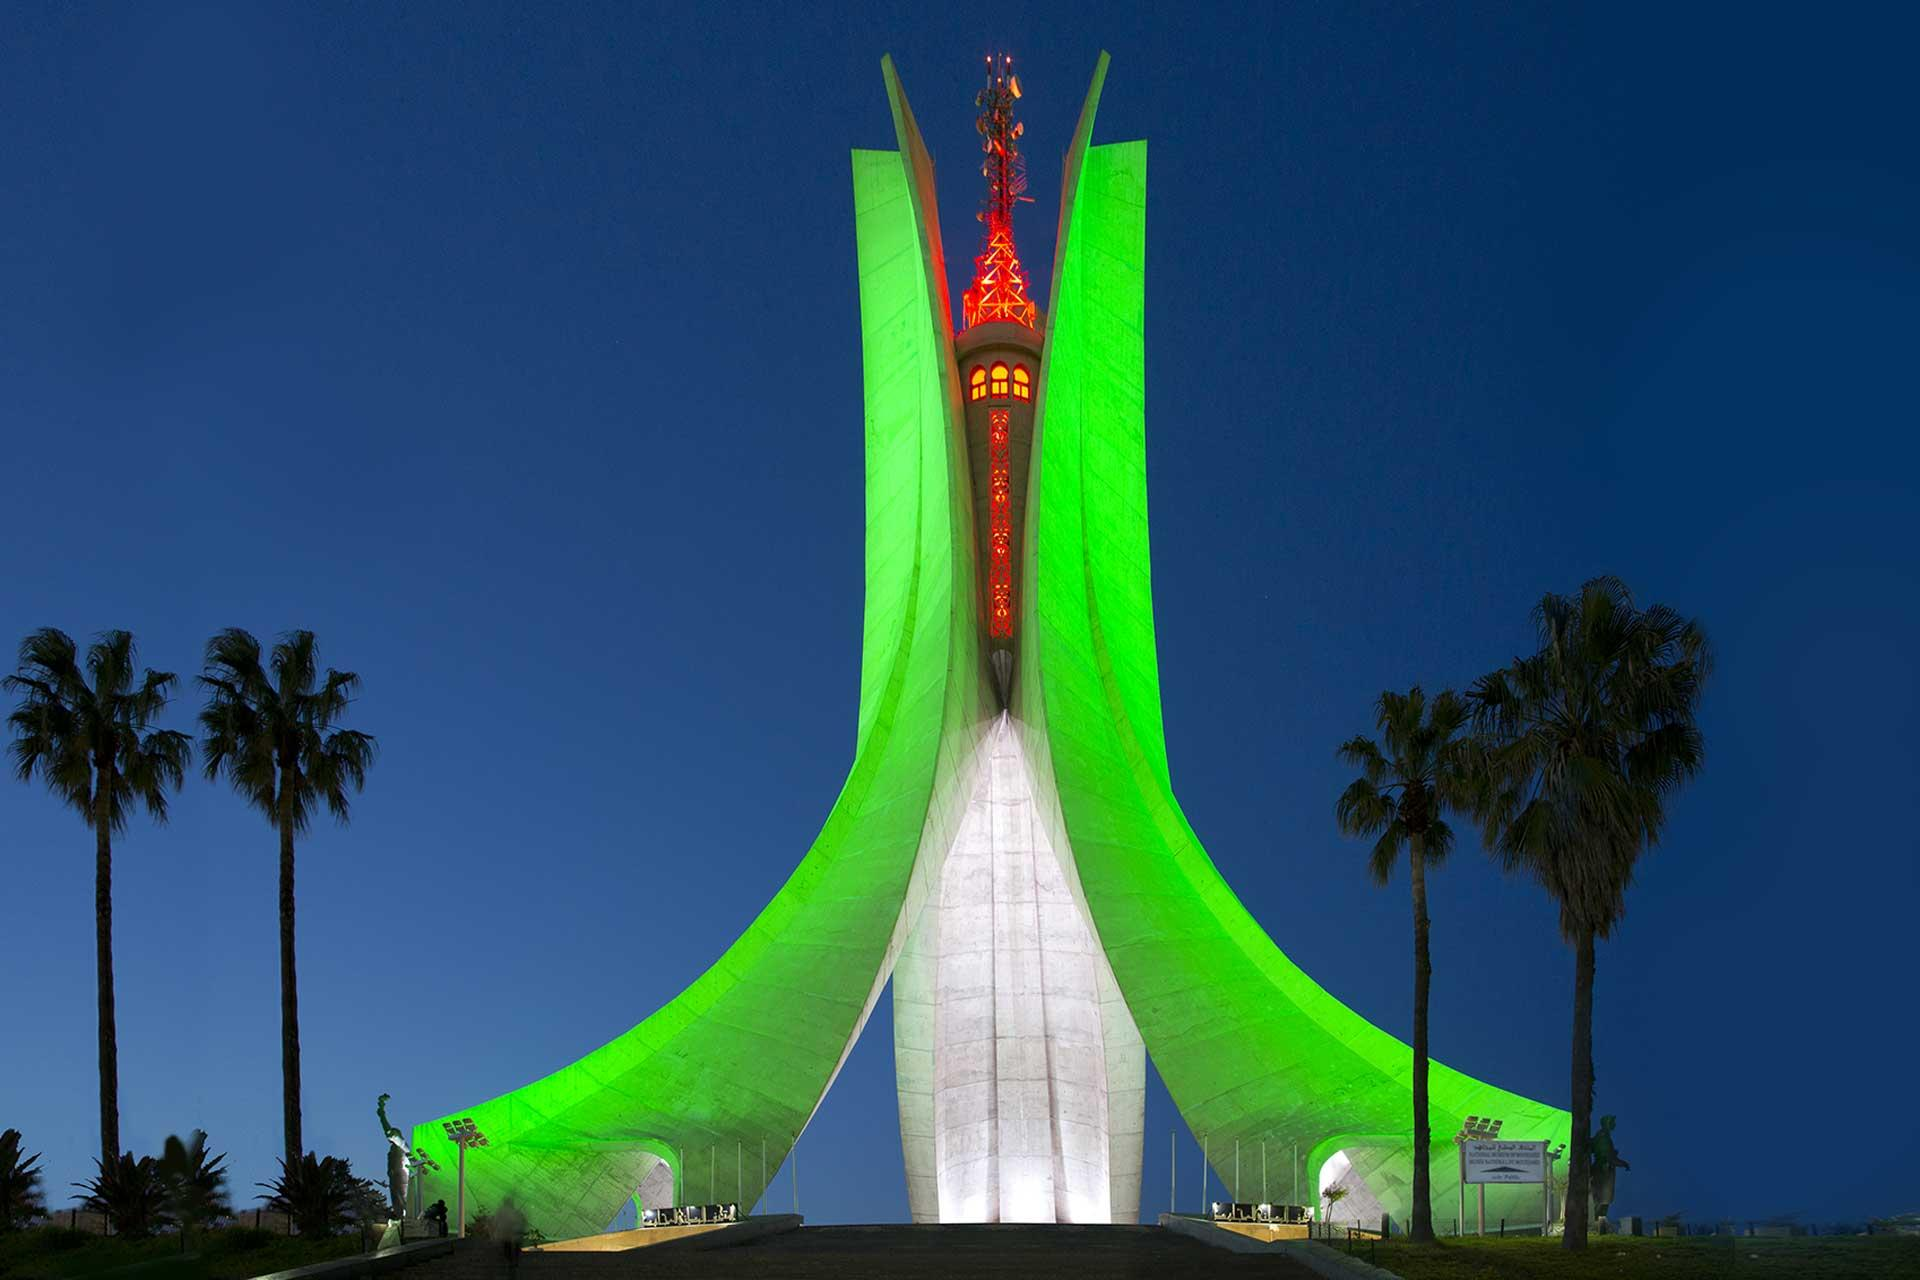 Schréder illumination scheme transforms iconic Maqam Echahid into a striking focal point on the heights of Algiers